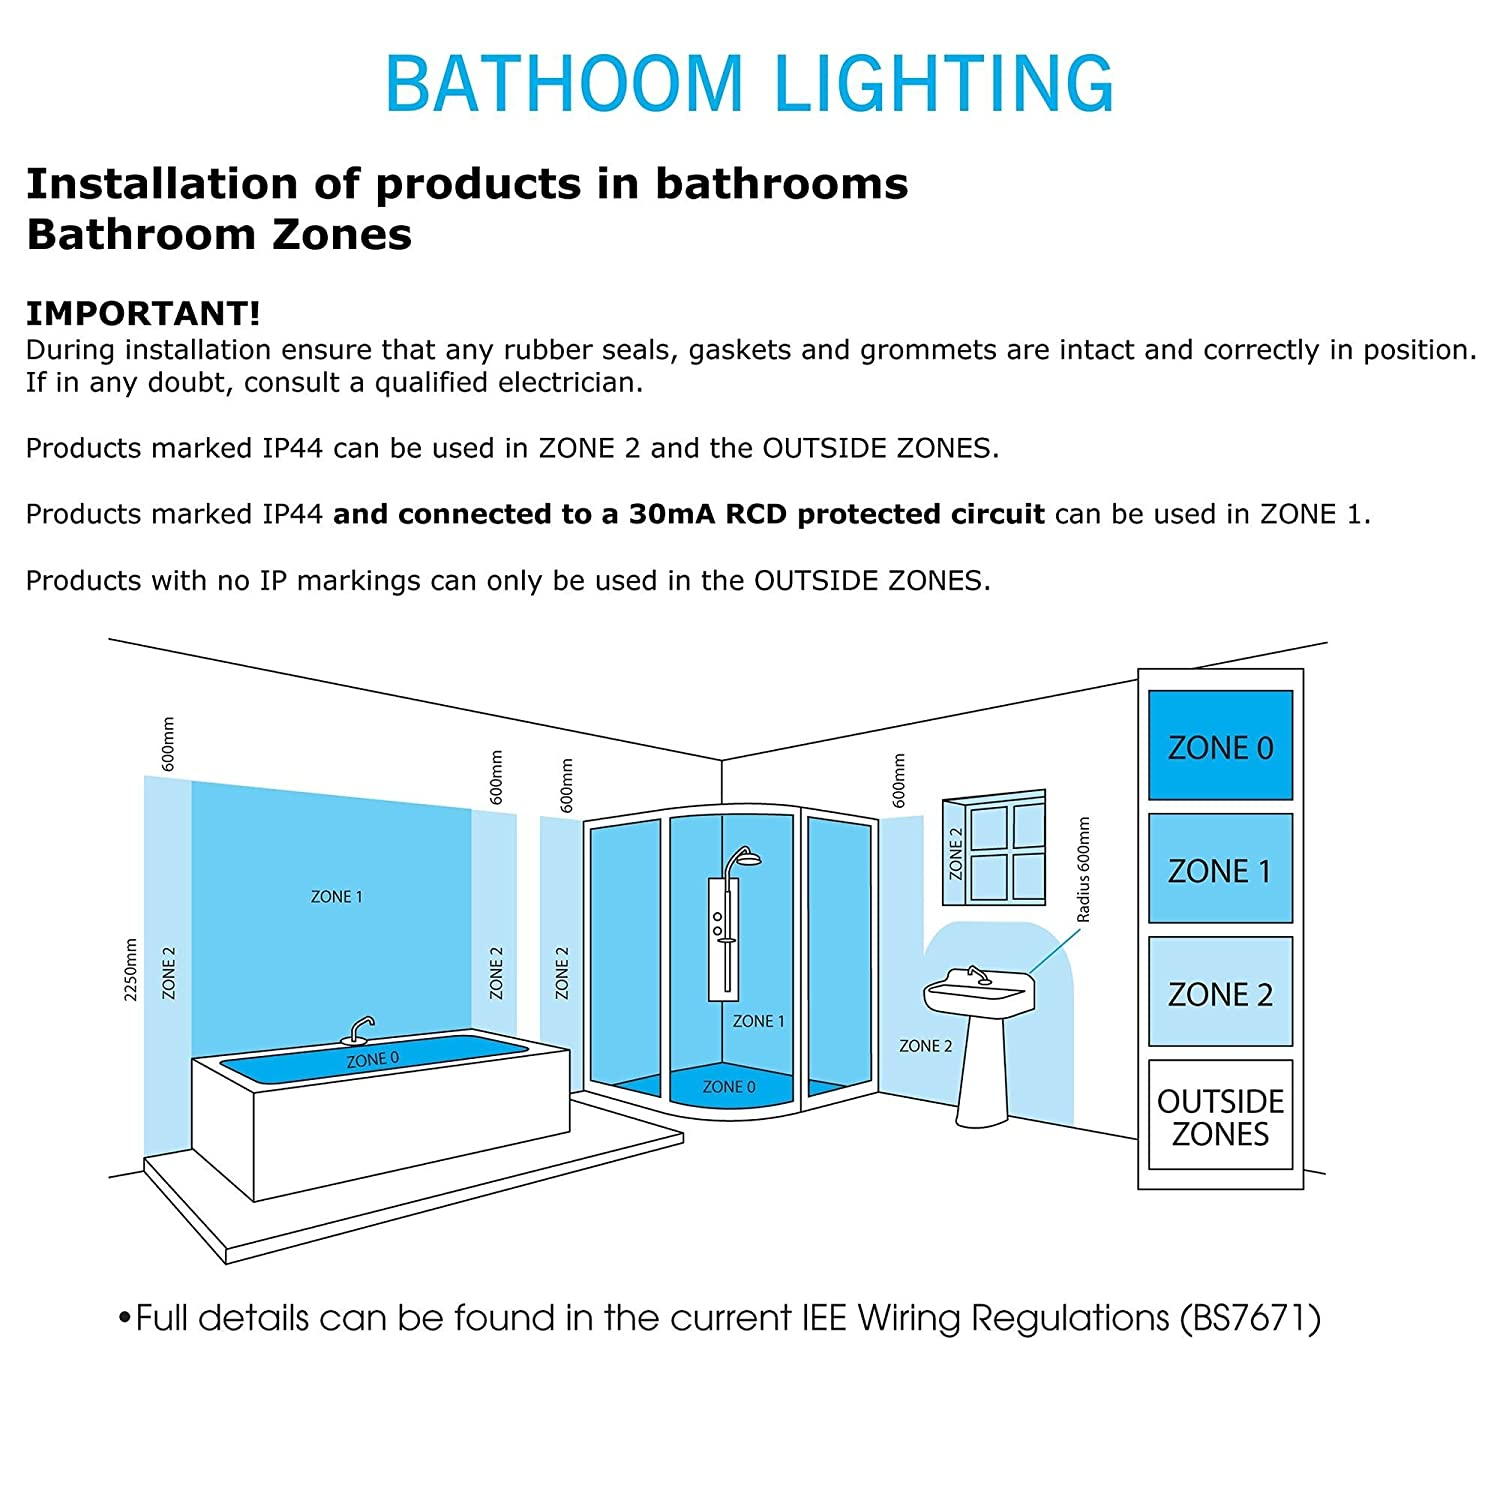 Bathroom Zone 2 Shower Rcd Wiring Diagram Electric An Pack Of Tiltable Circular Downlights Ceiling Spot